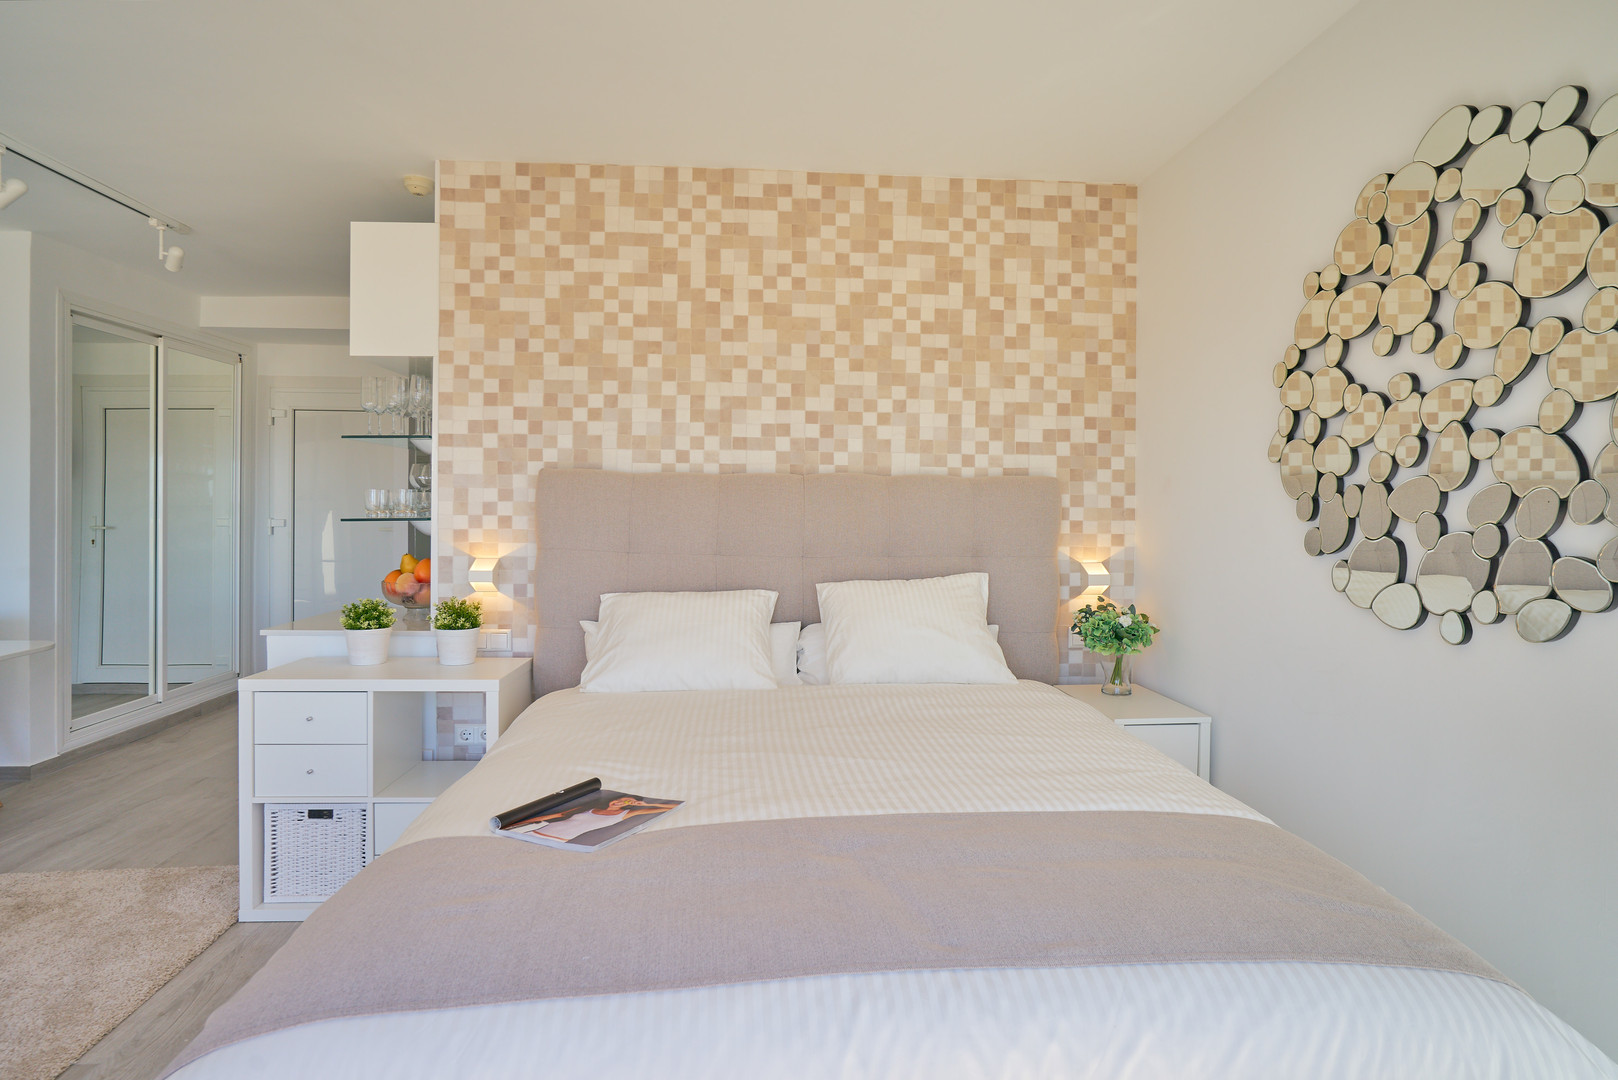 200 bed xl king size bed marbella.jpg